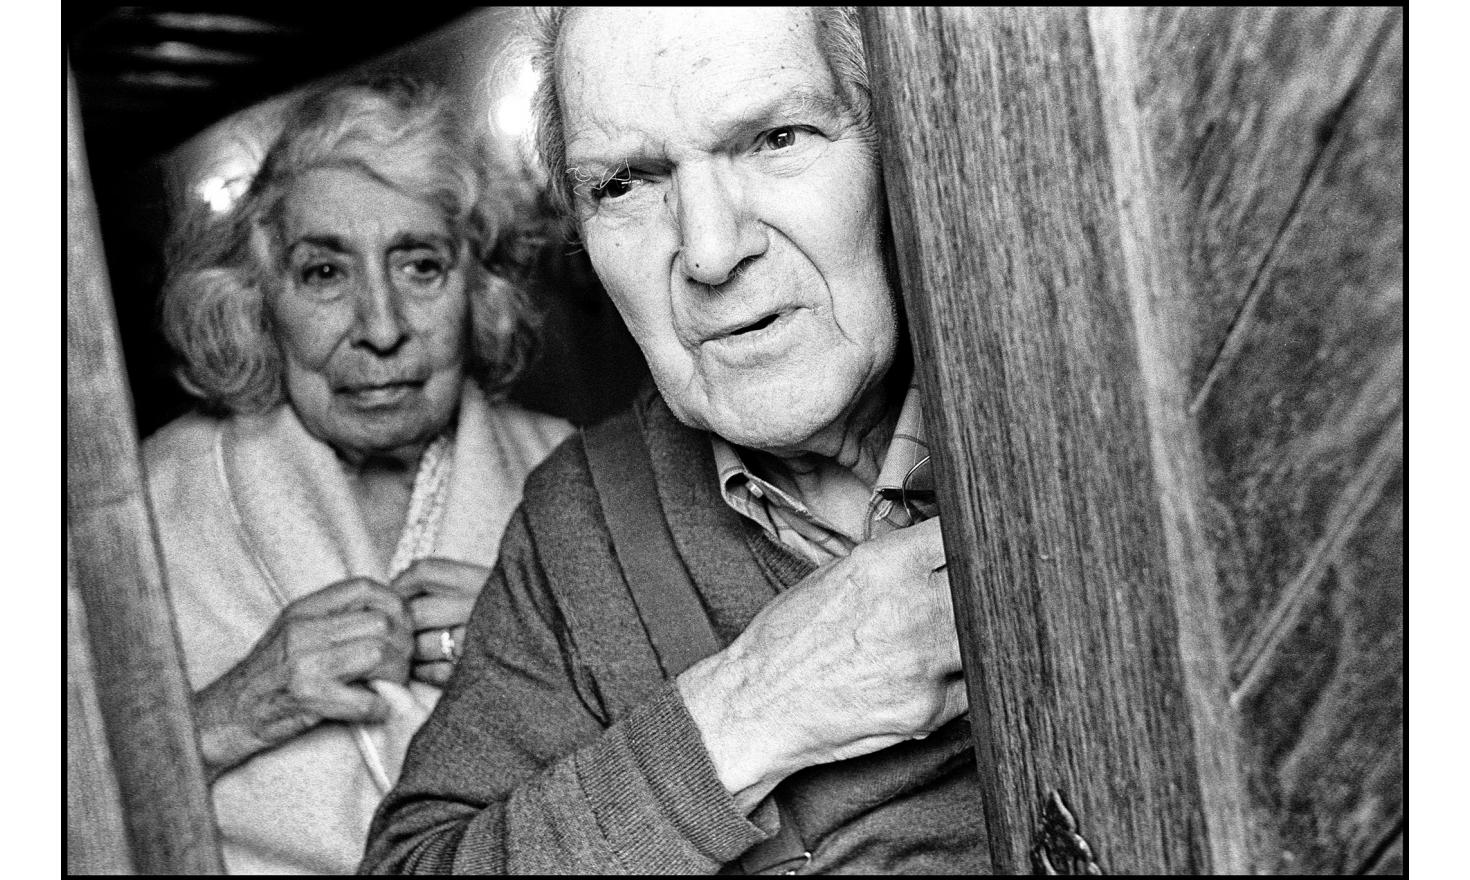 My parents at the door of their house. Igny, France. April 2002